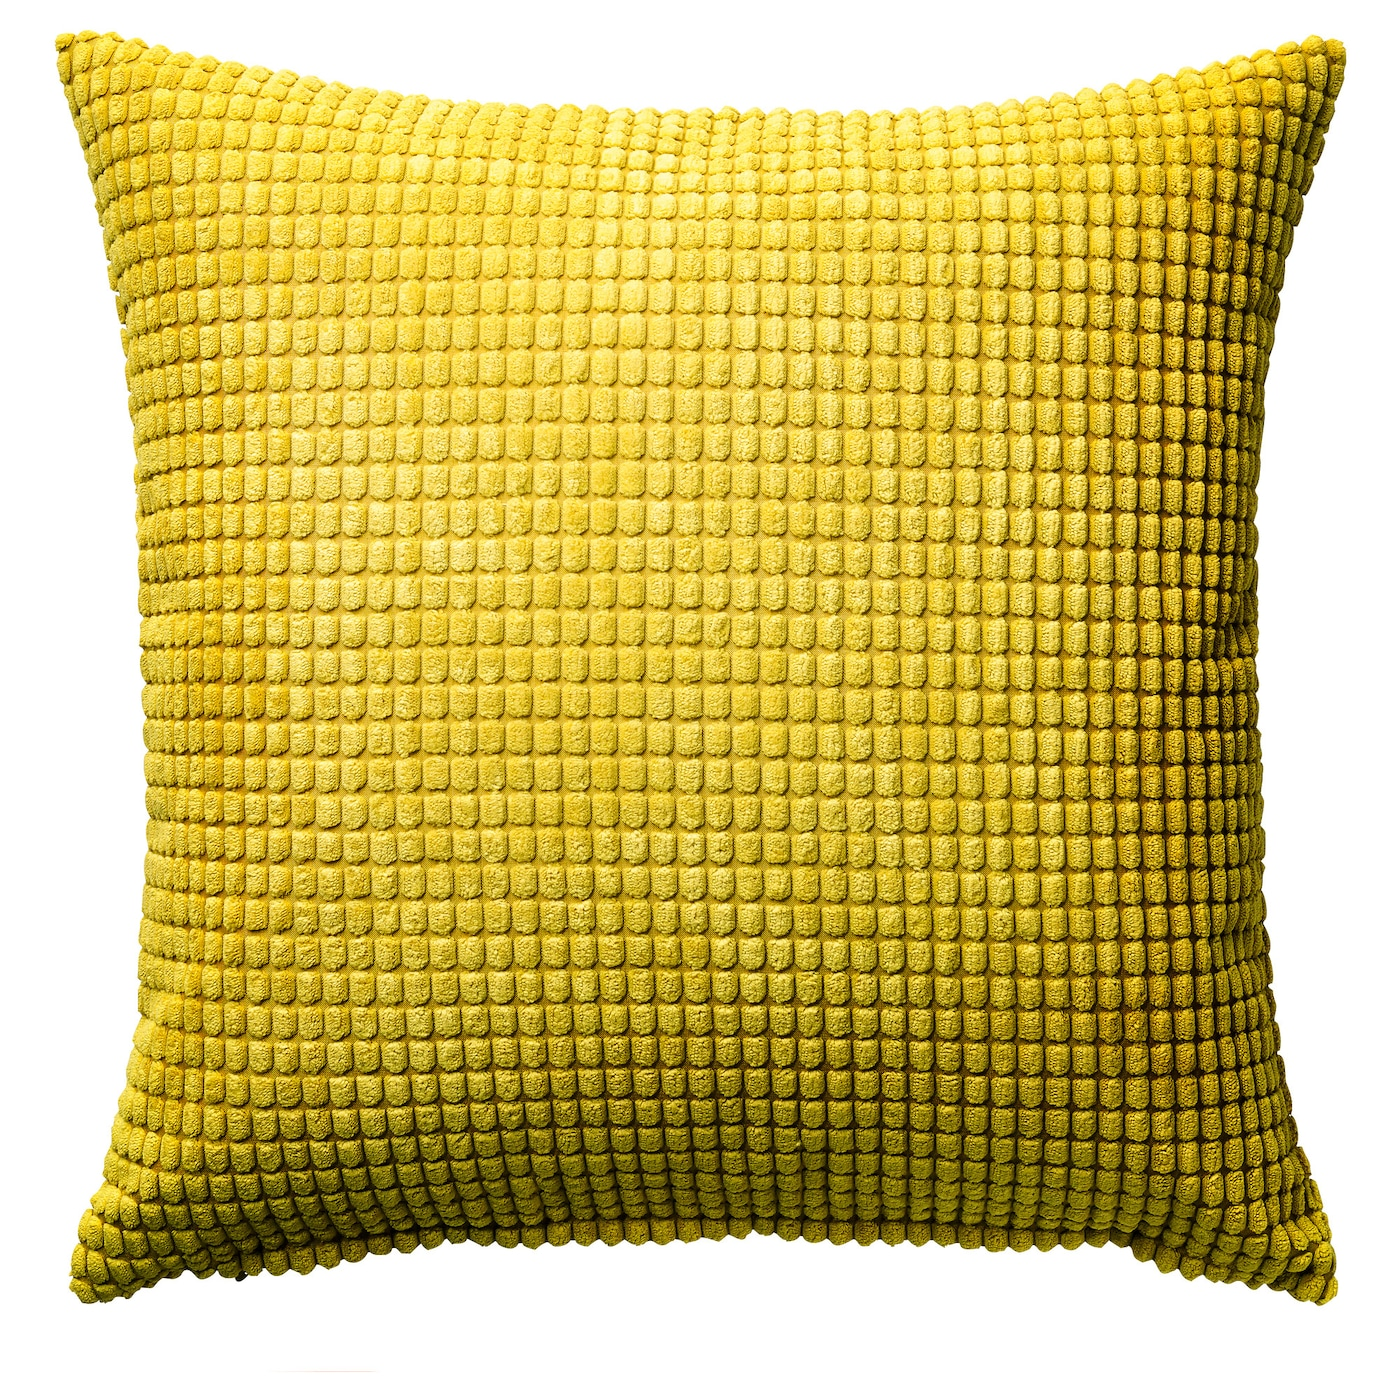 Gullklocka cushion cover yellow 50x50 cm ikea for Housse coussin 60x60